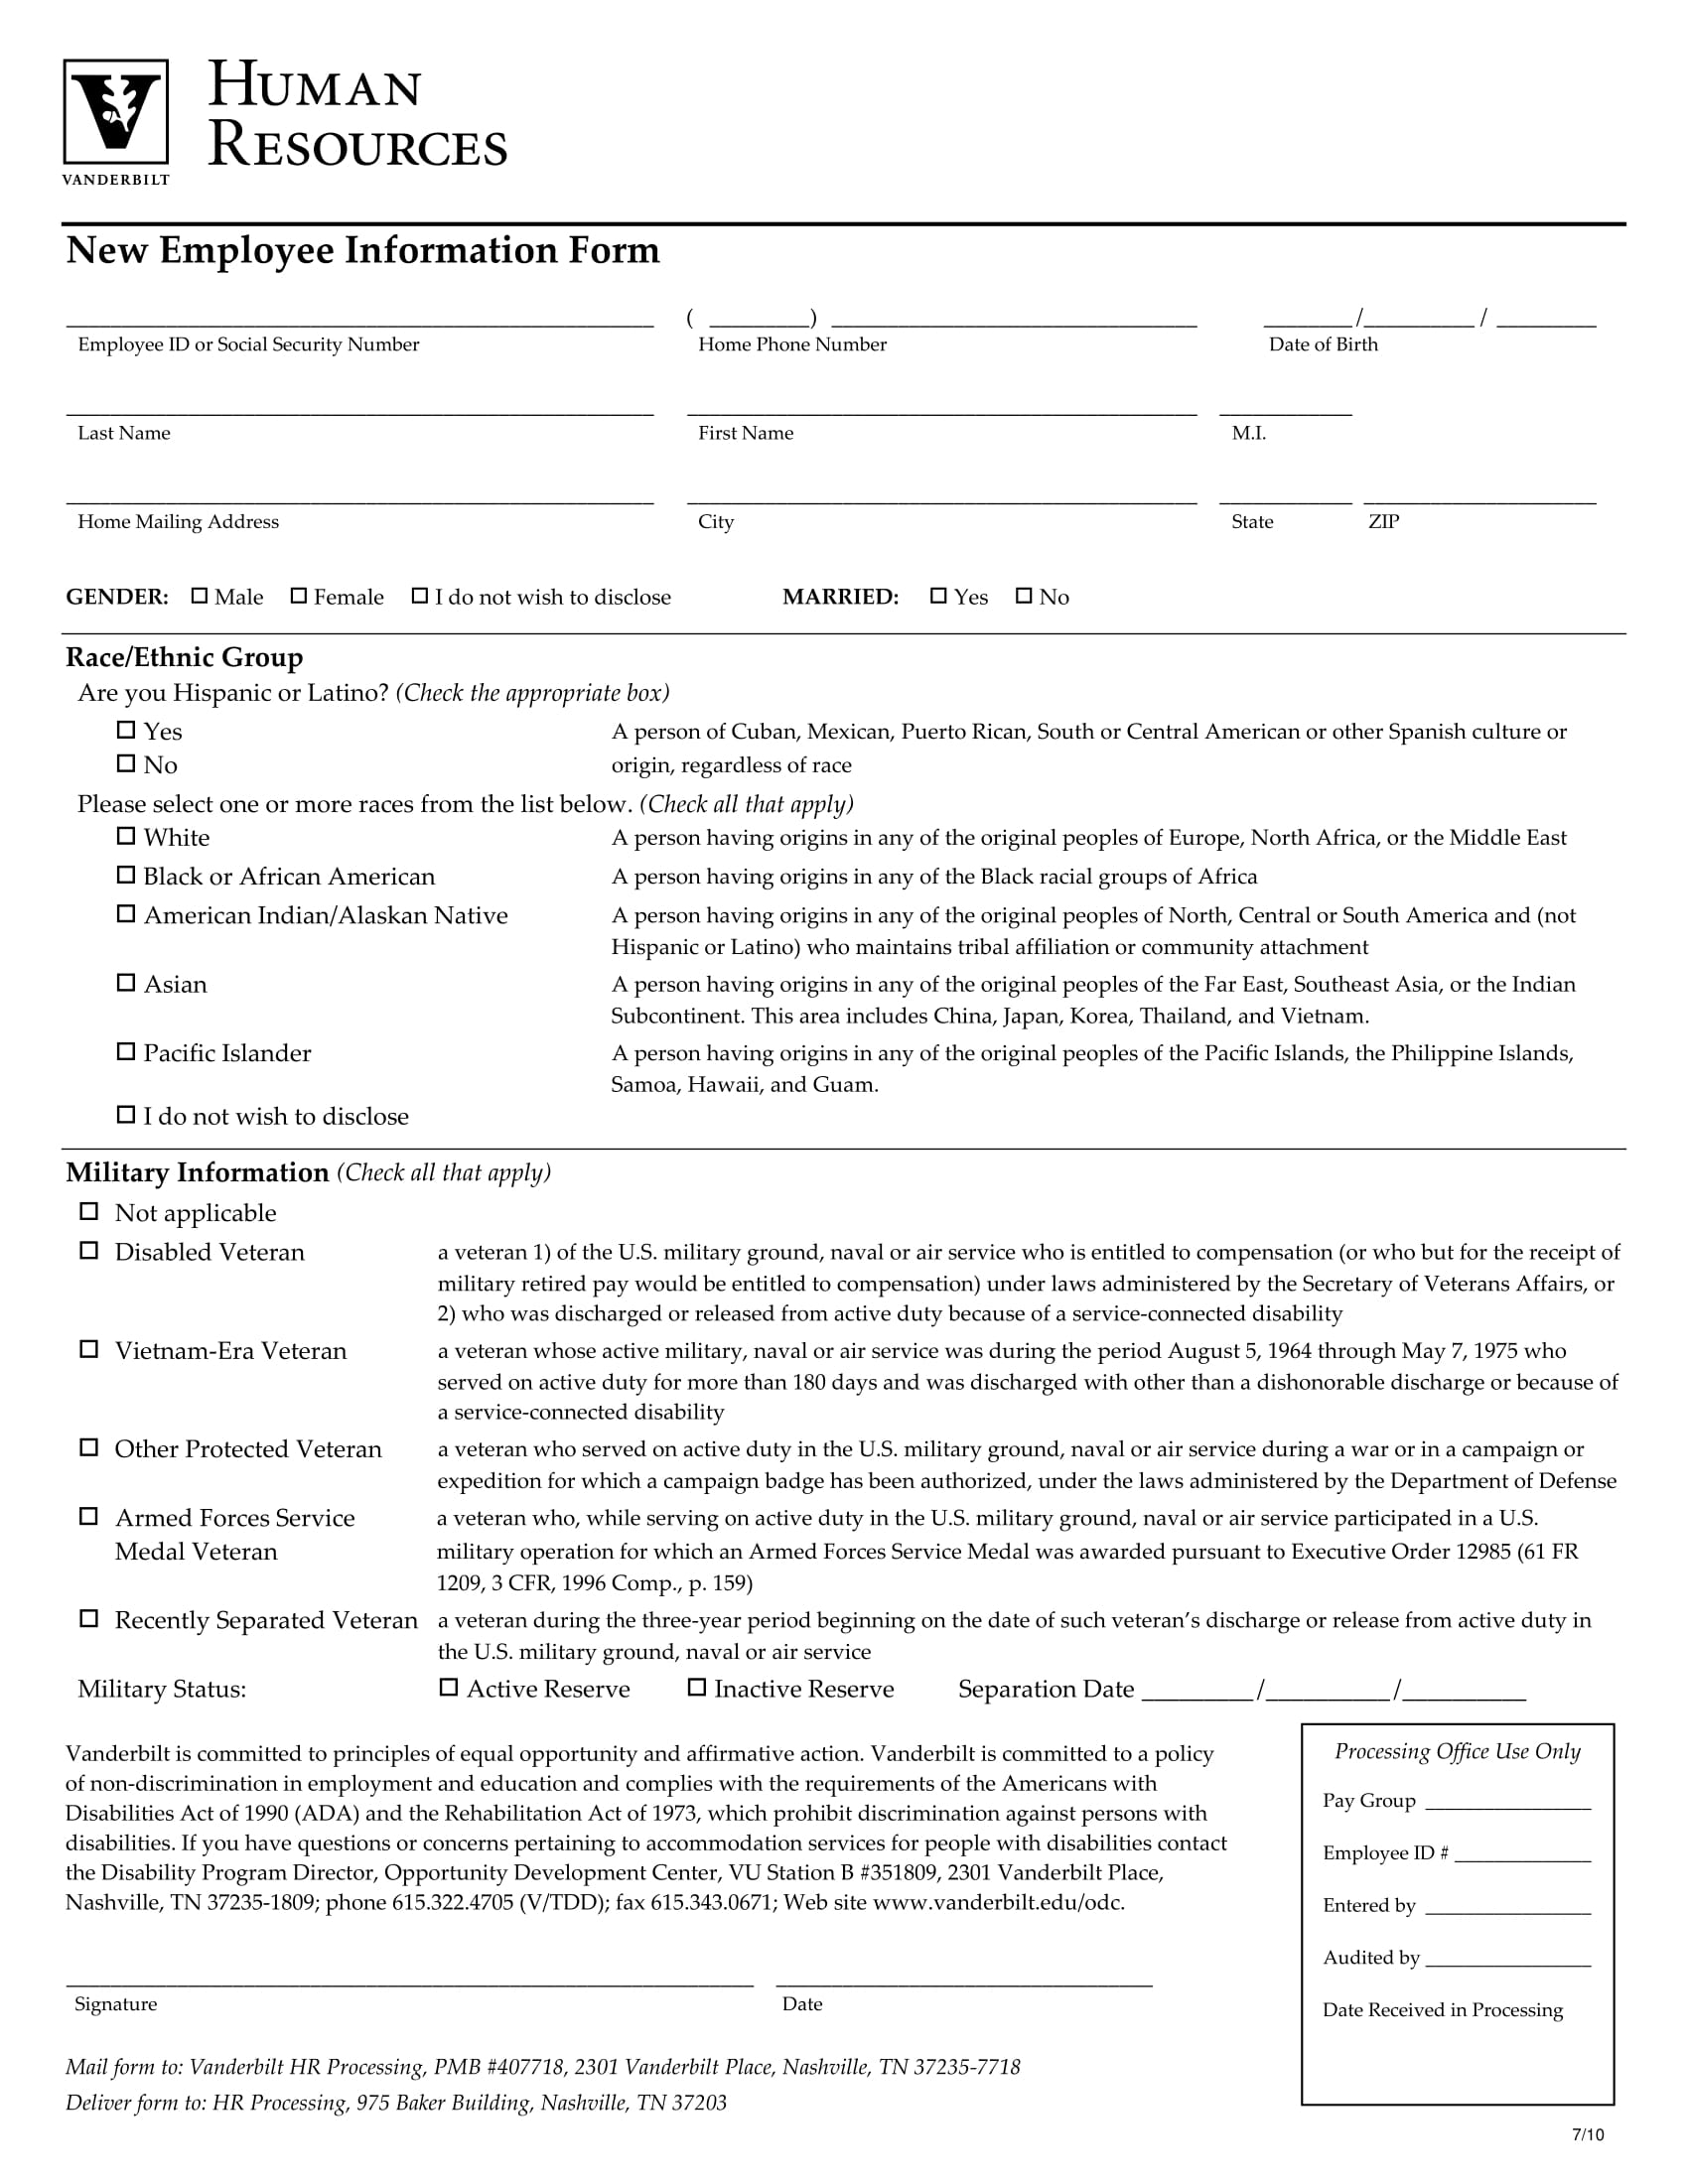 new employee information form 1